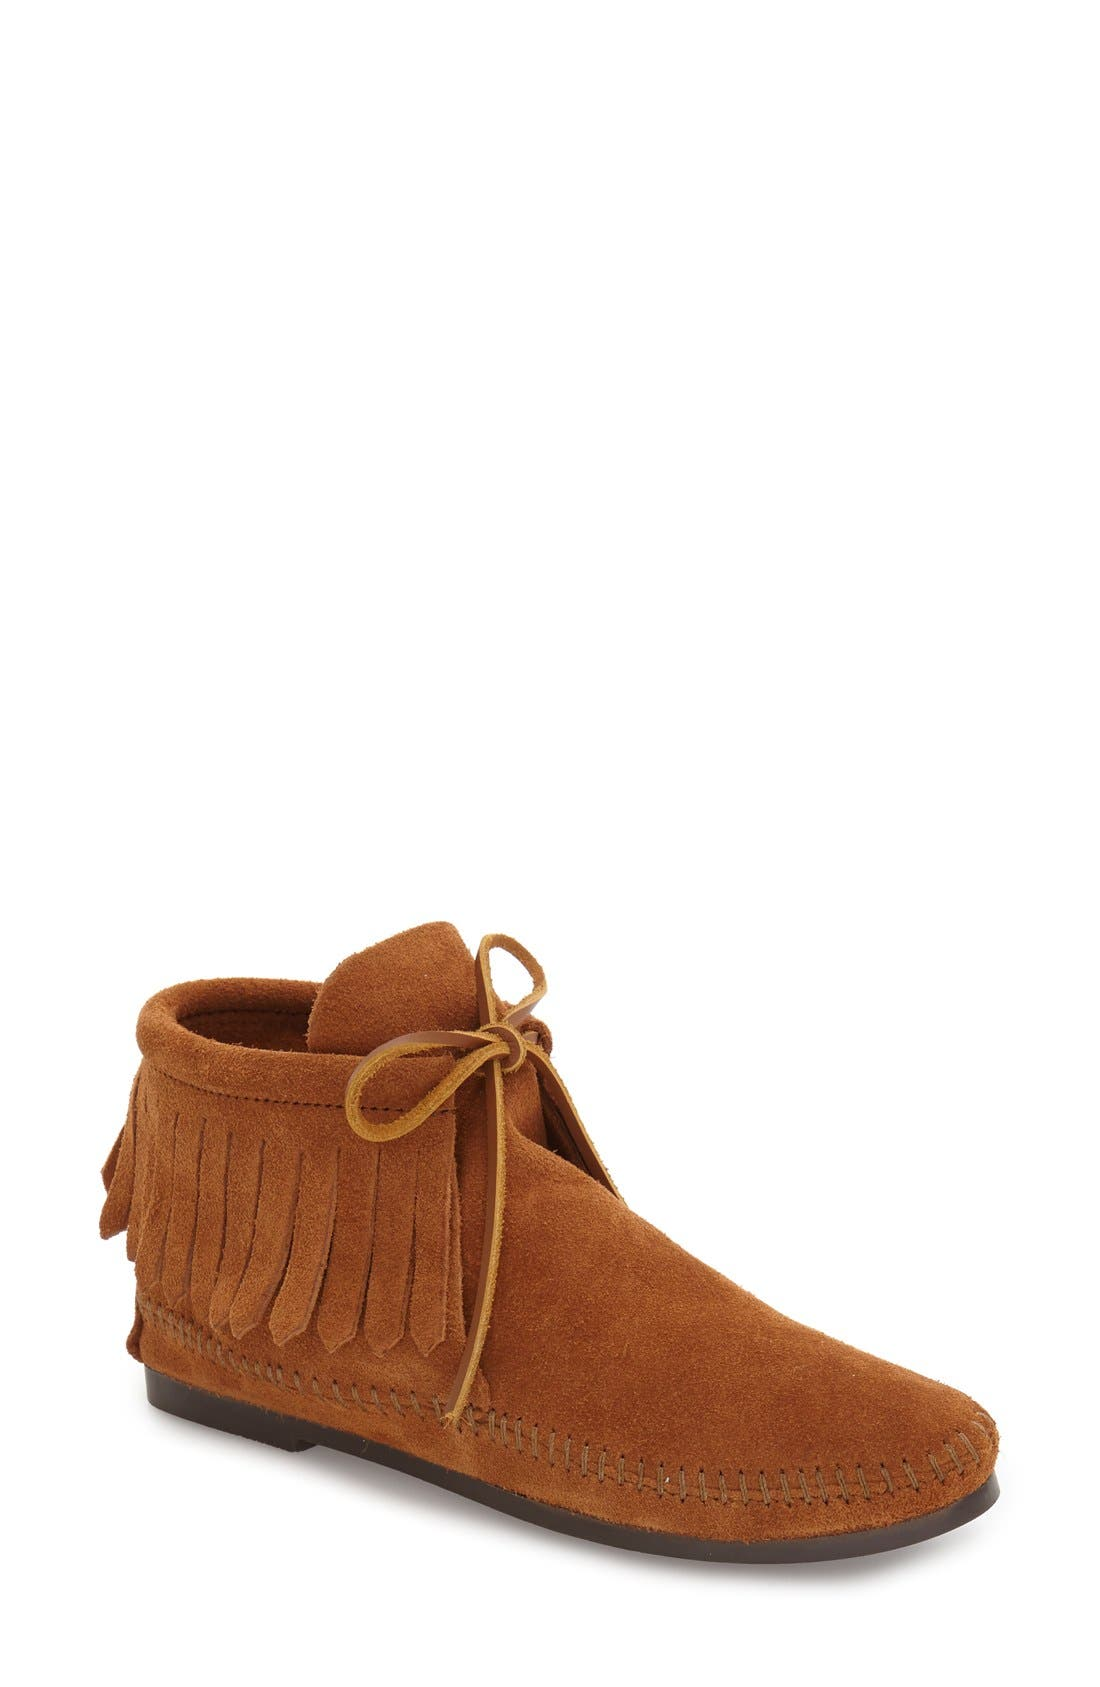 Classic Fringed Chukka Style Boot,                         Main,                         color, Brown